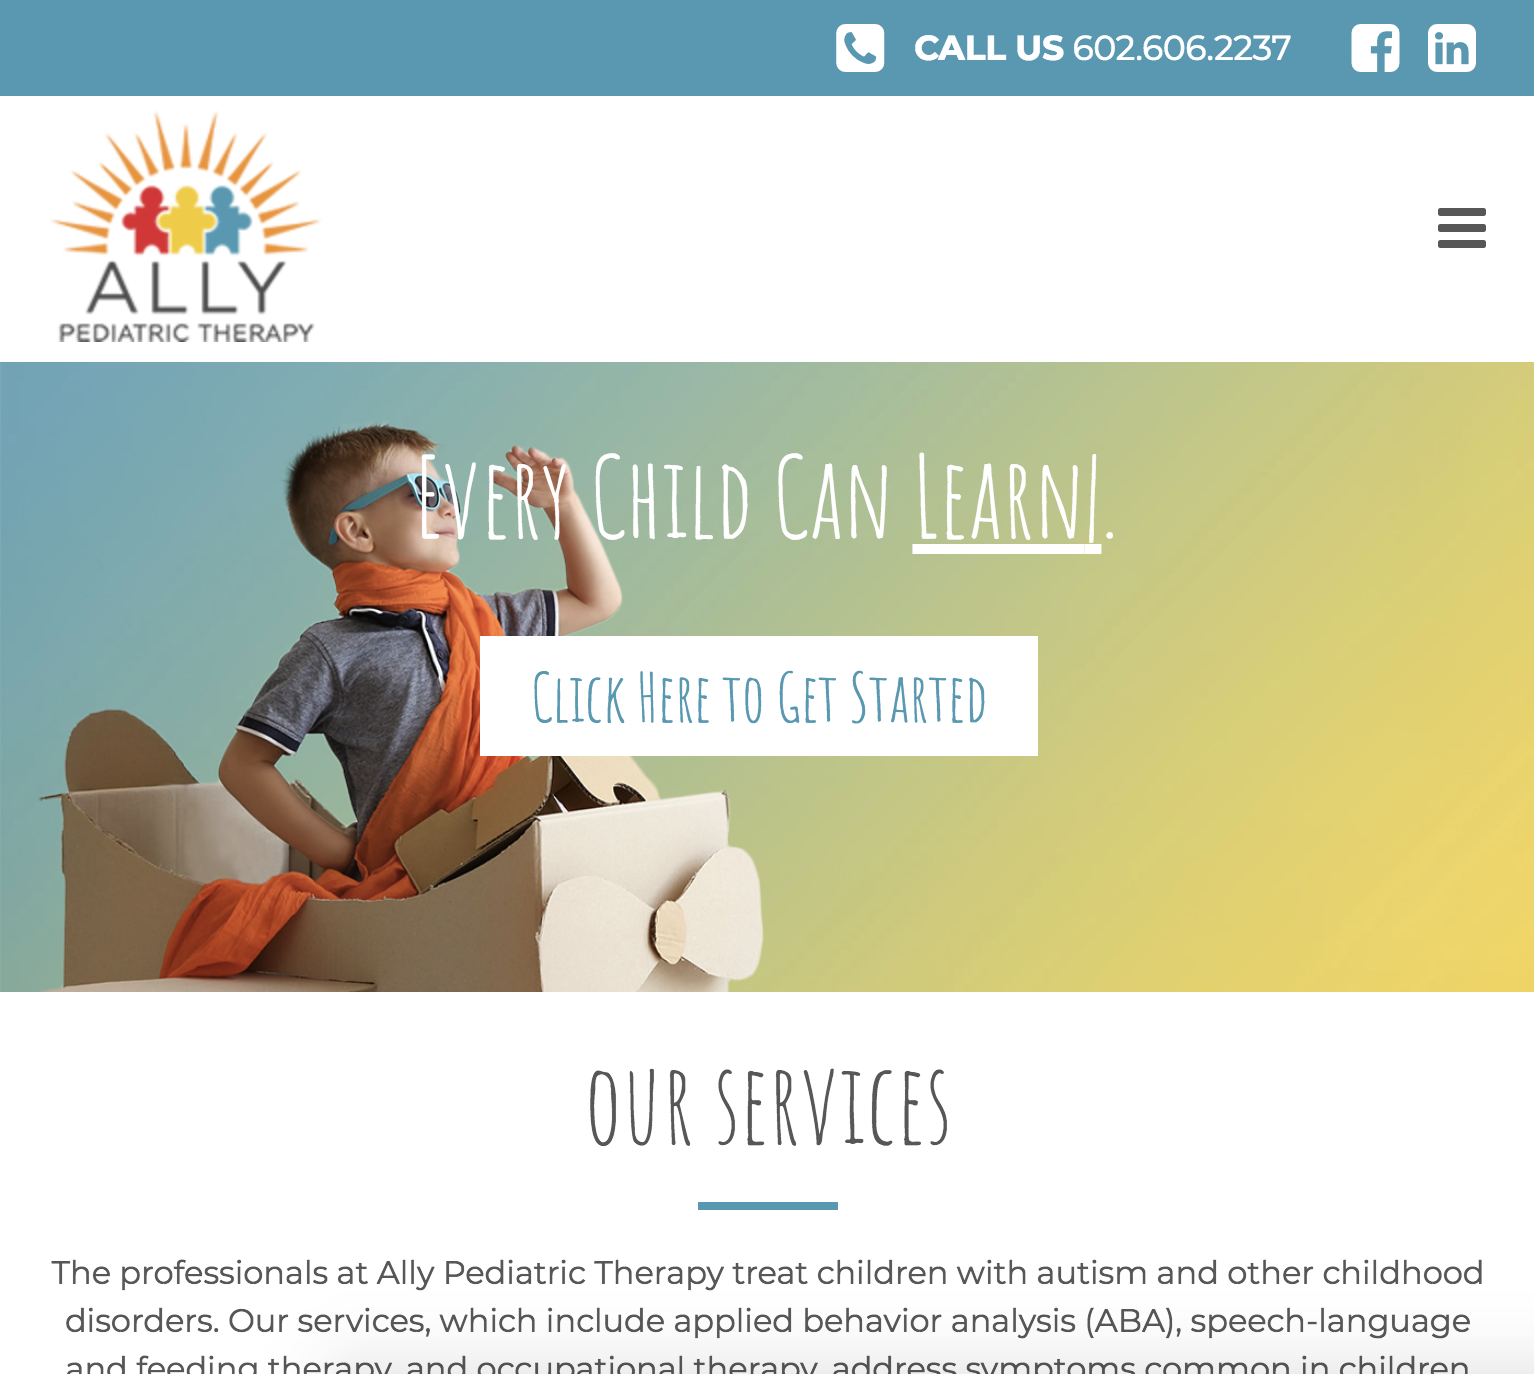 Ally Pediatric Therapy